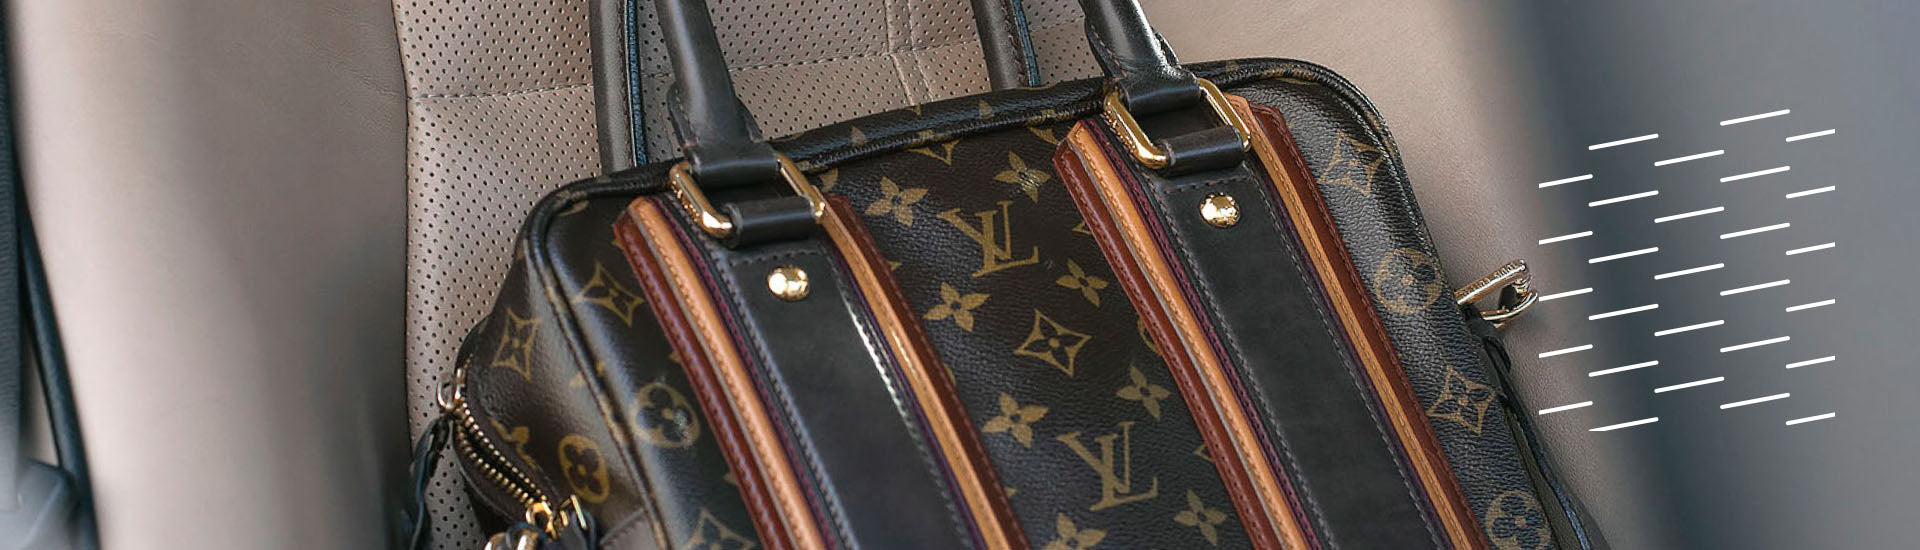 Lifestyle accessories, bracelets, luxury bags, Louis Vuitton, Books, Fashion